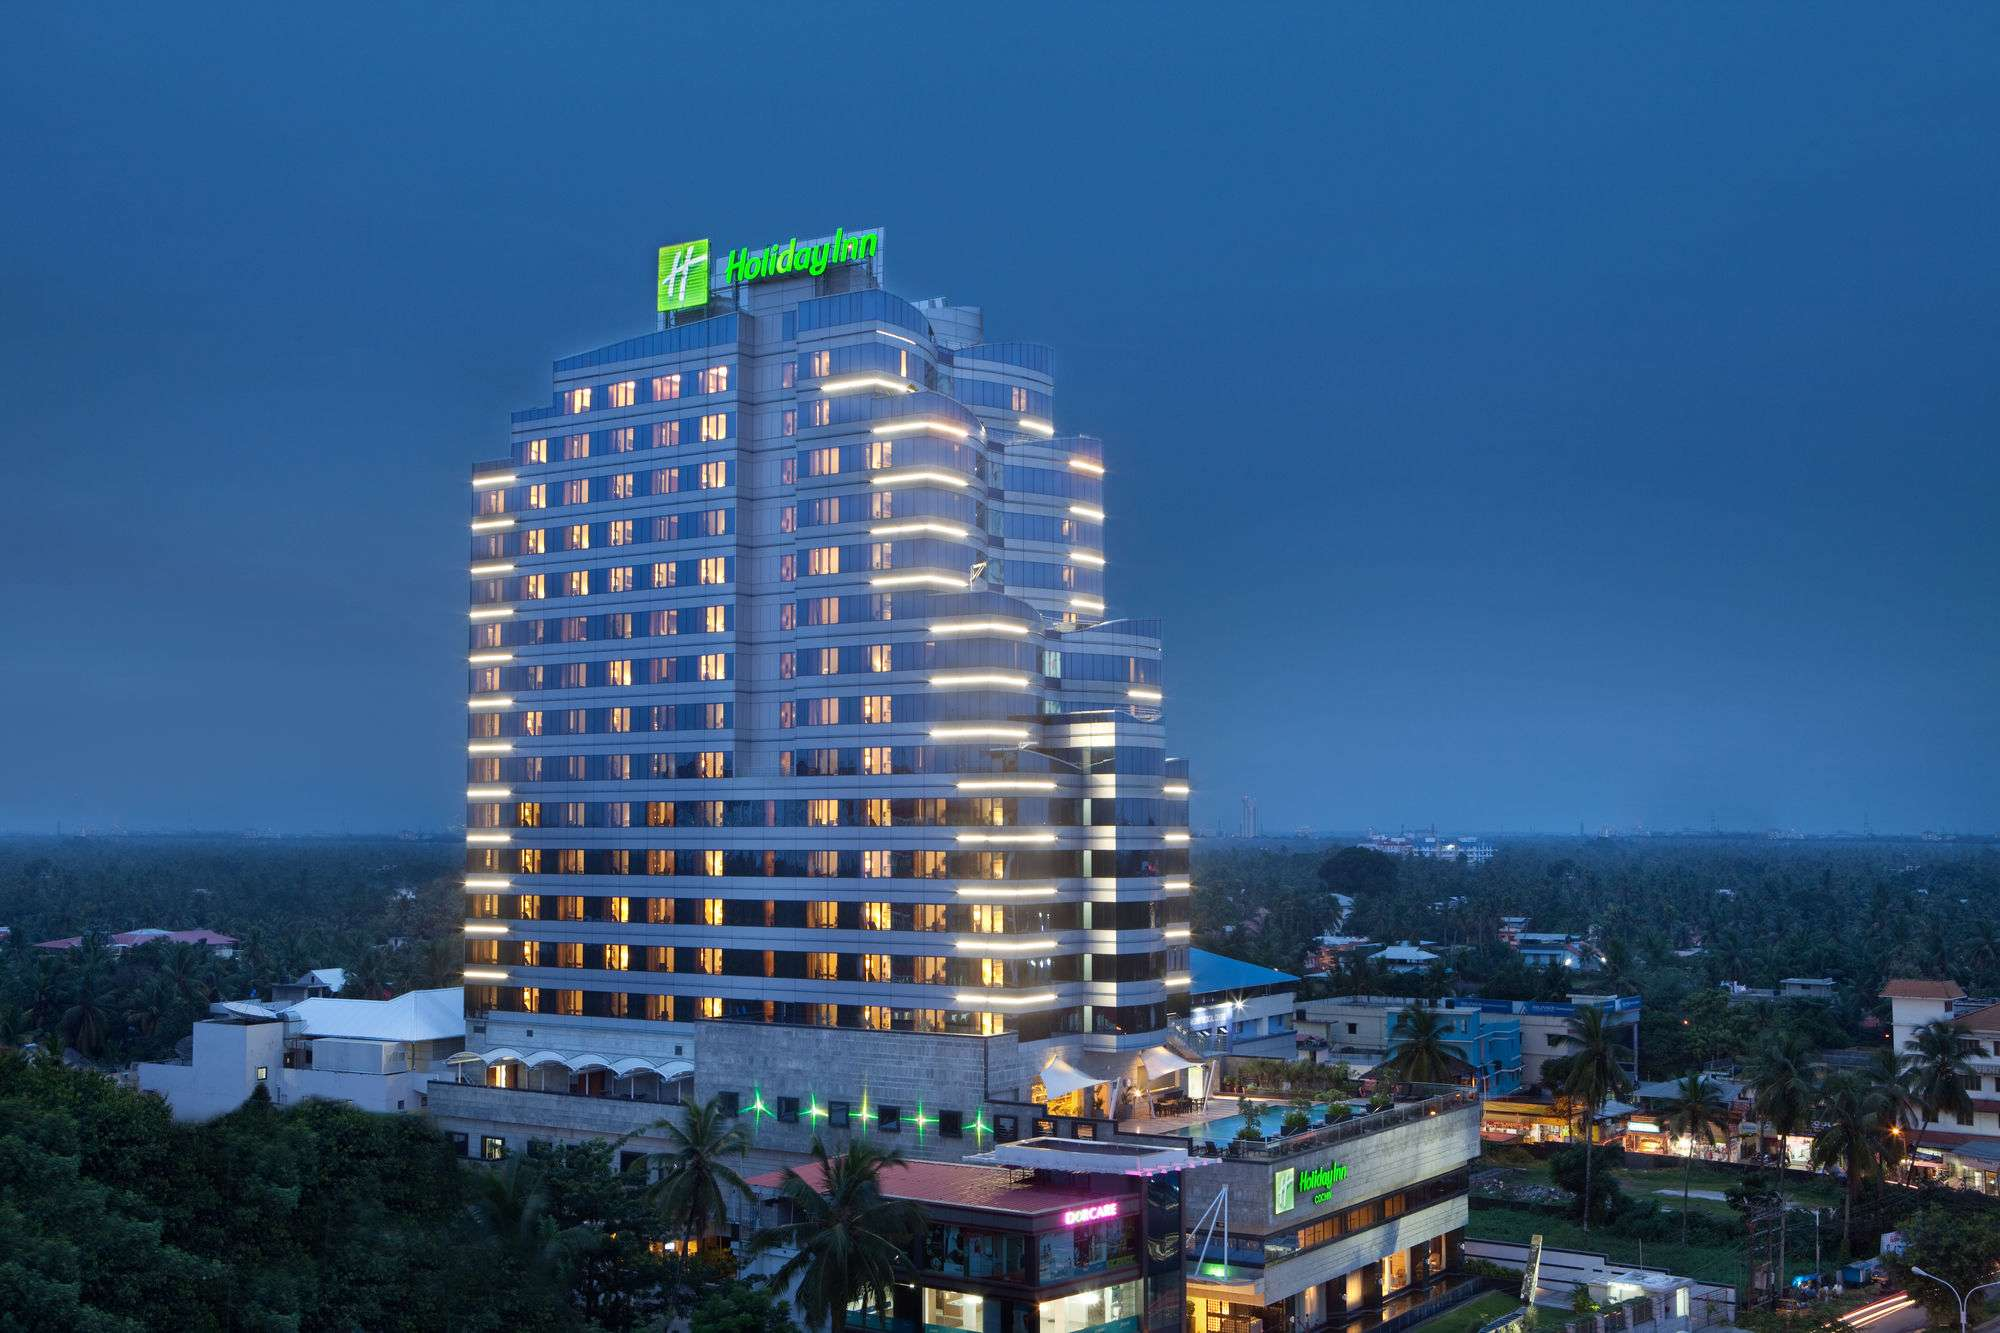 HOLIDAY INN,Cochin/Ernakulam Hotel